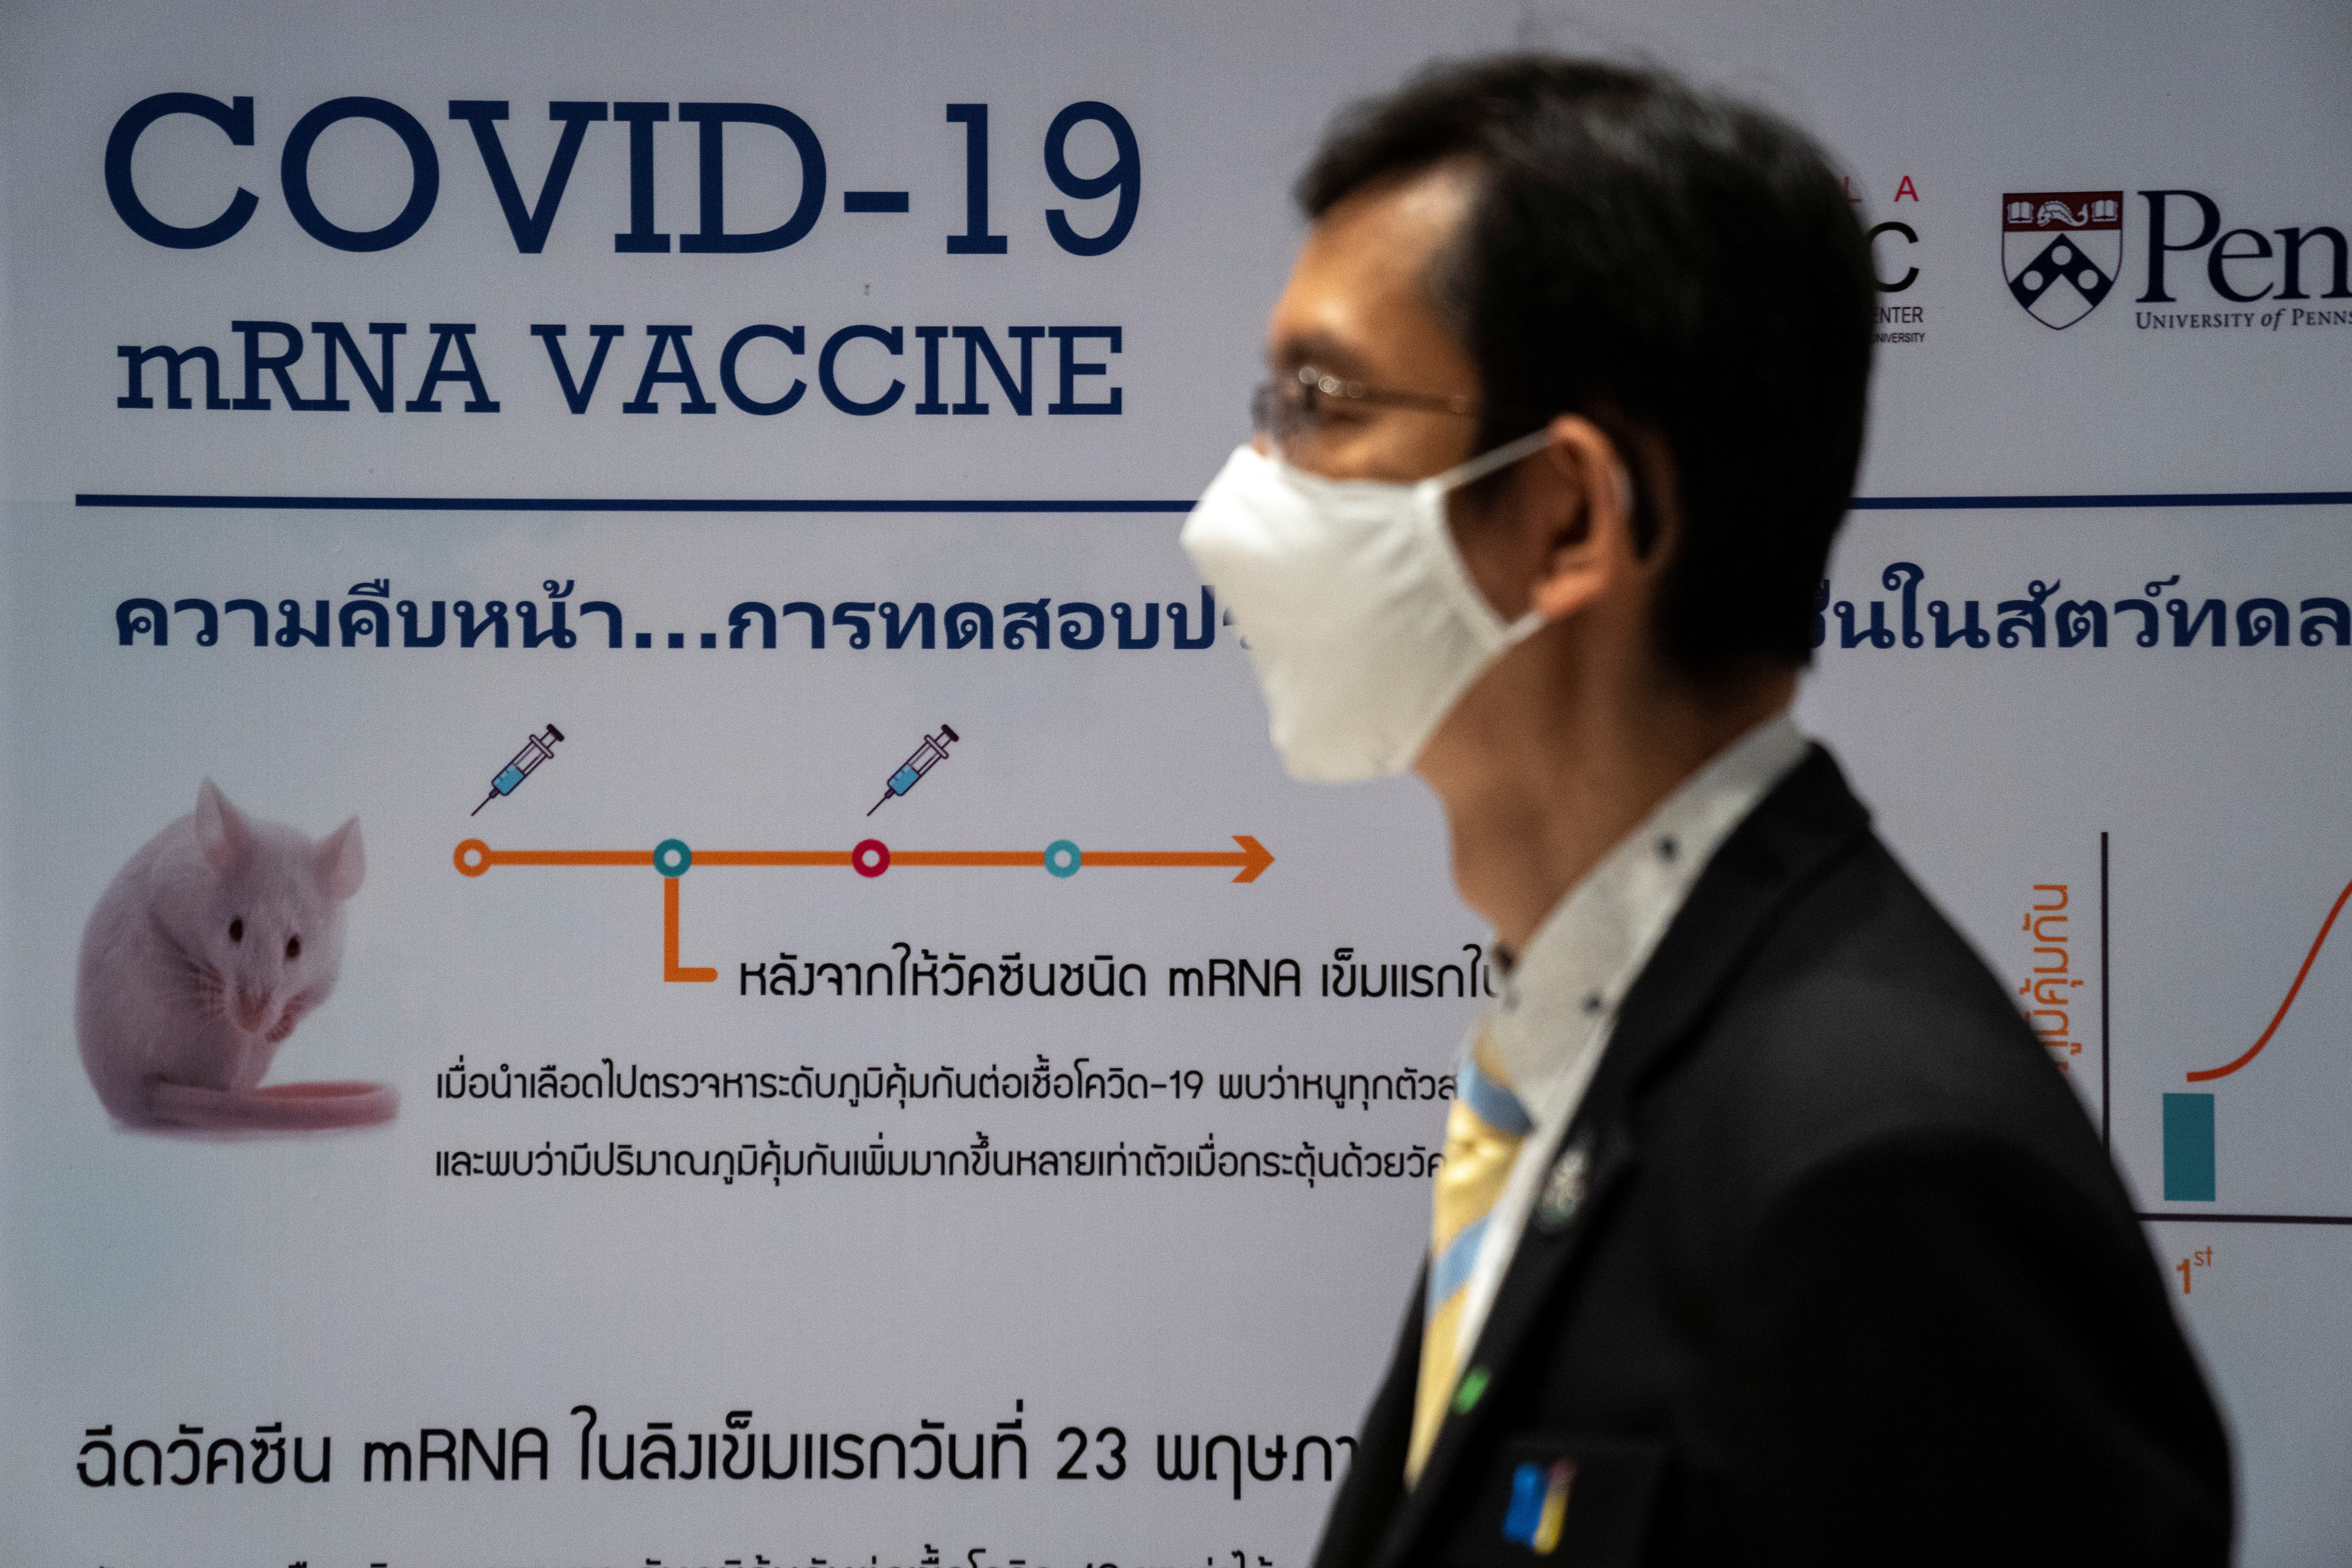 A man wearing a face mask stands next to a board showing the progress of developing an mRNA type vaccine candidate for the coronavirus disease (COVID-19) during a news conference at the National Primate Research Center of Chulalongkorn University in Saraburi province, Thailand, June 22, 2020. REUTERS/Athit Perawongmetha - RC29EH91GIEK